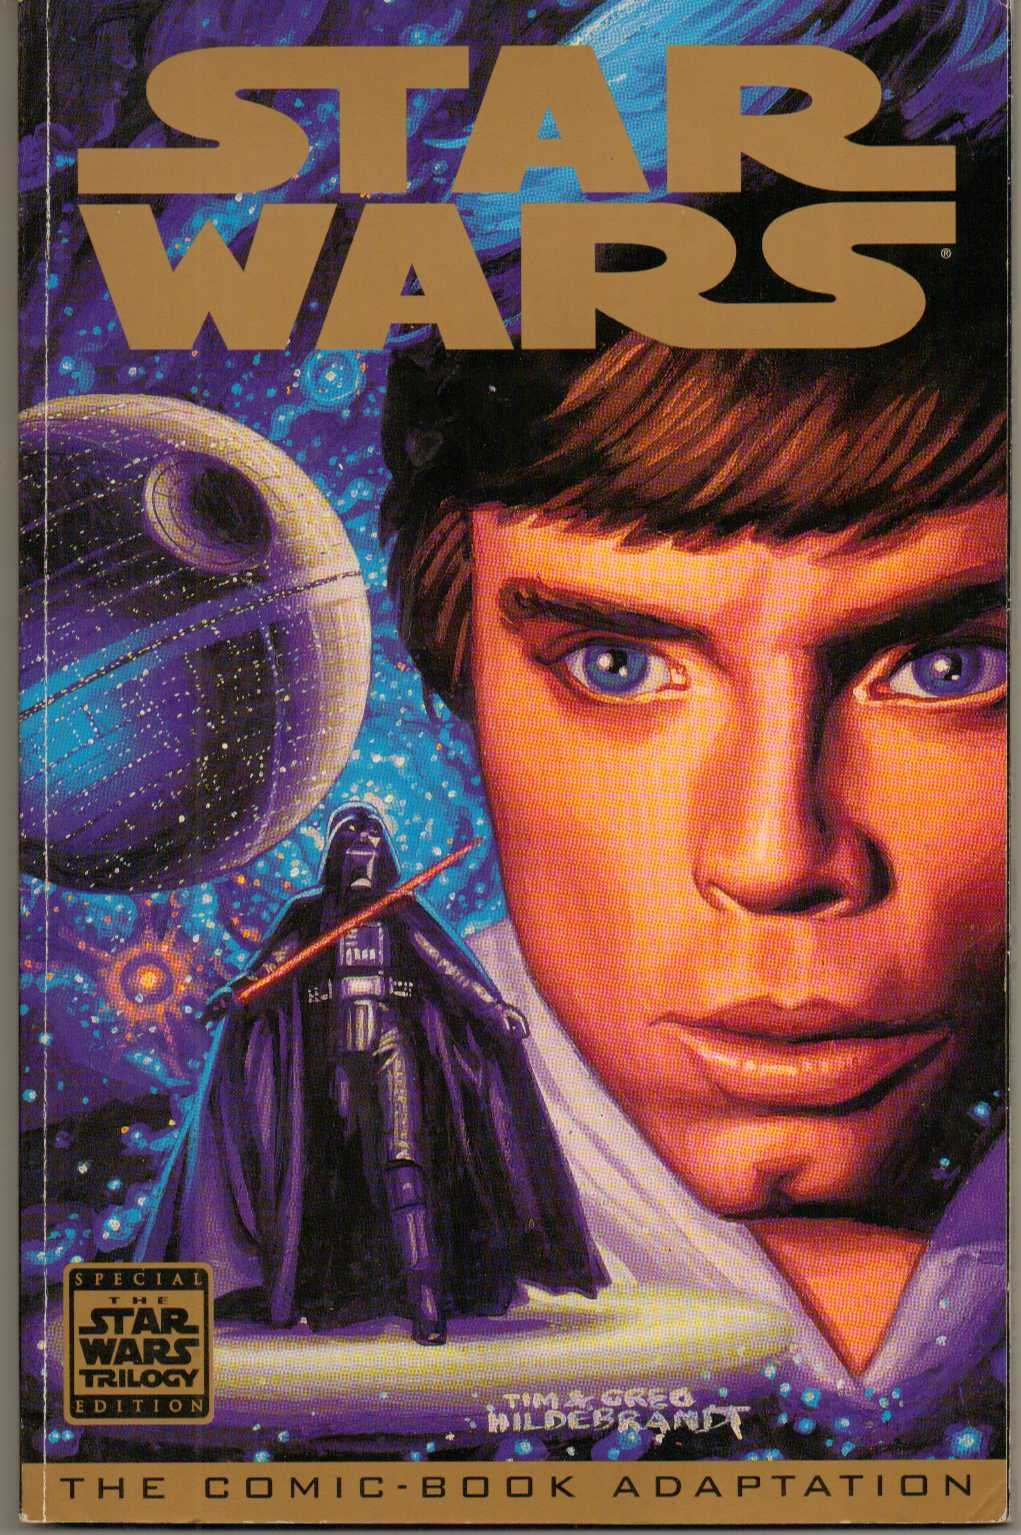 Star Wars: A New Hope (Dark Horse Special Edition Release)